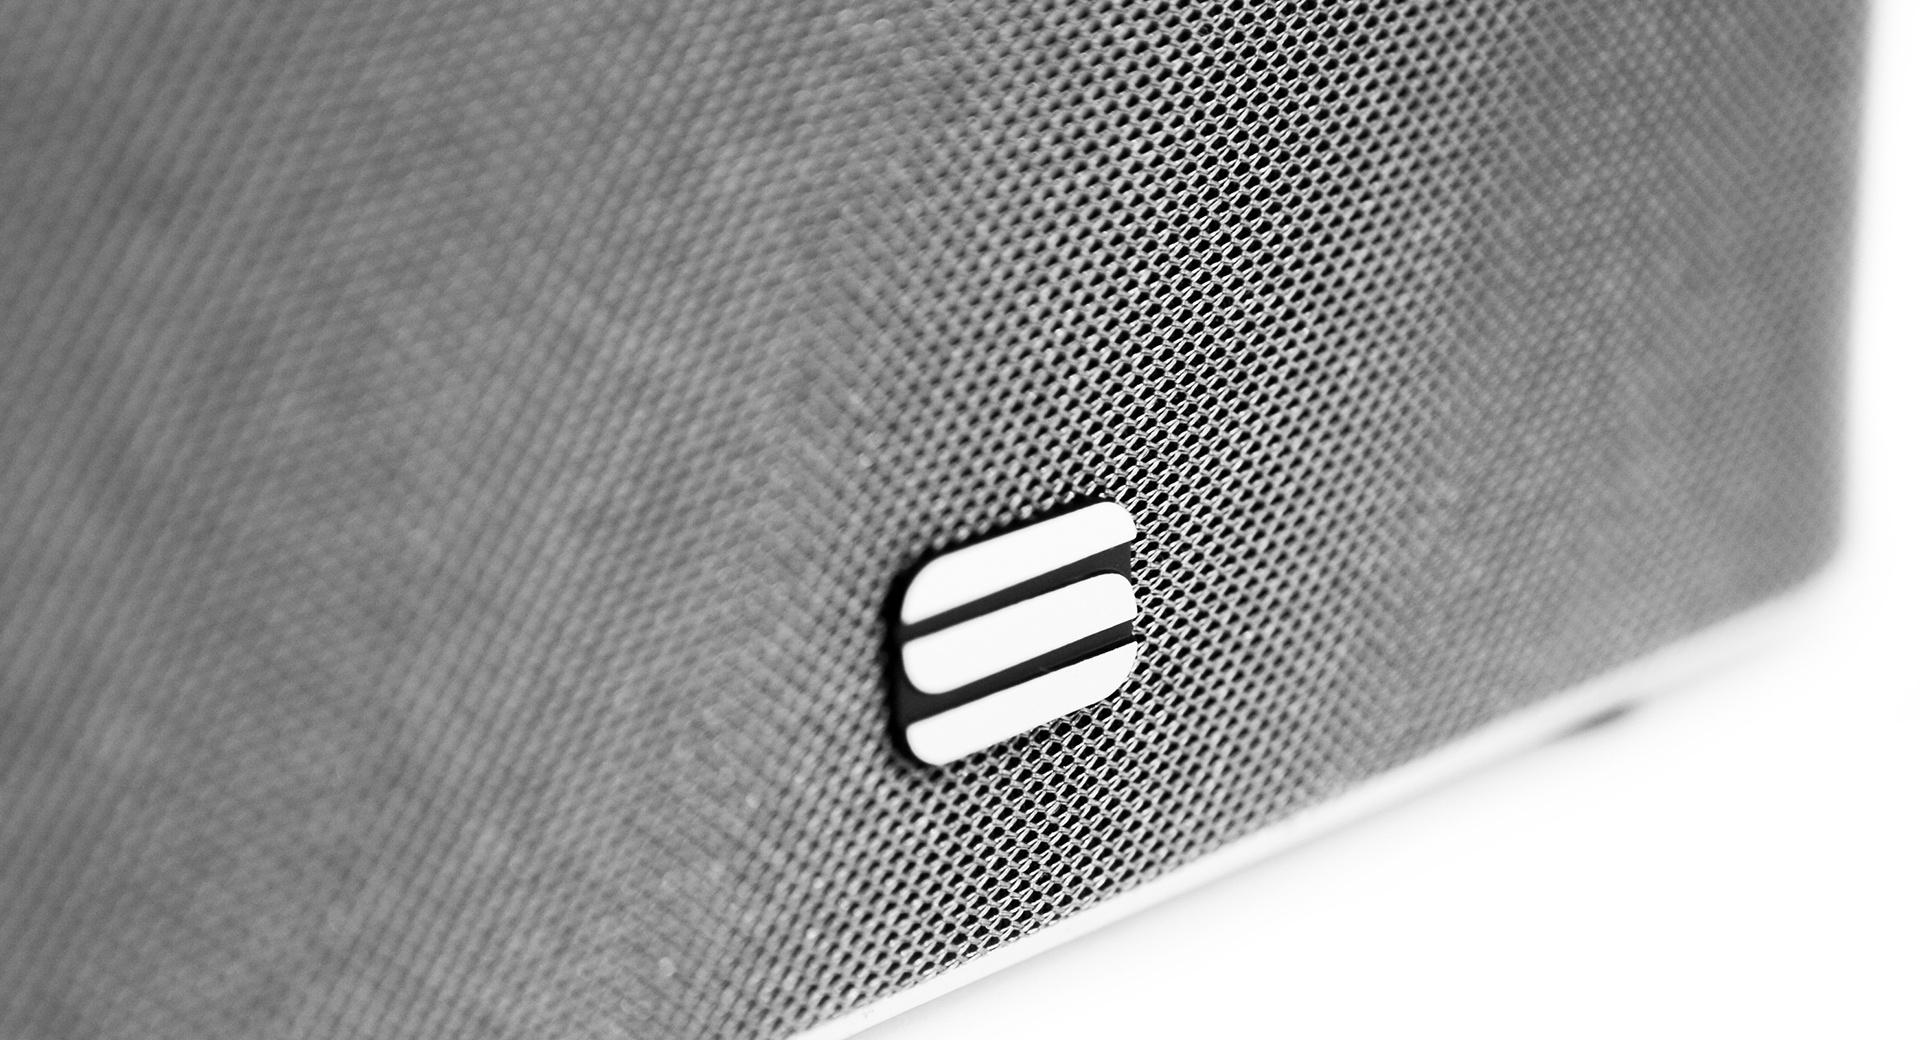 Speaker Grill wallpapers HD quality